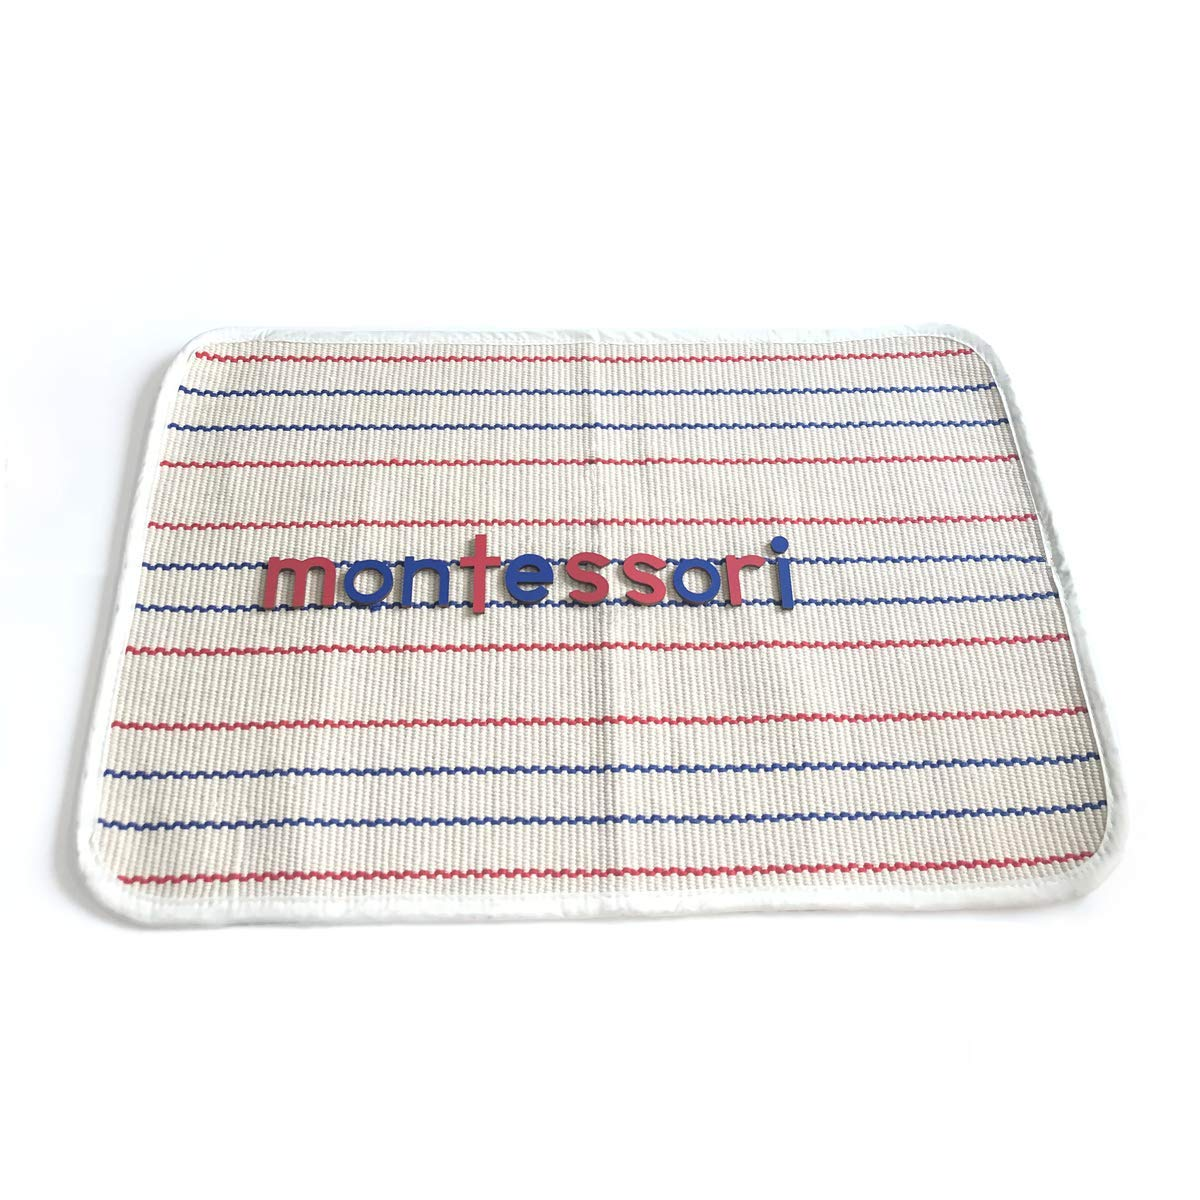 EOFEEL Montessori Materials Accessories Children Playing Mat Working Rug Small (17/×27in)/…